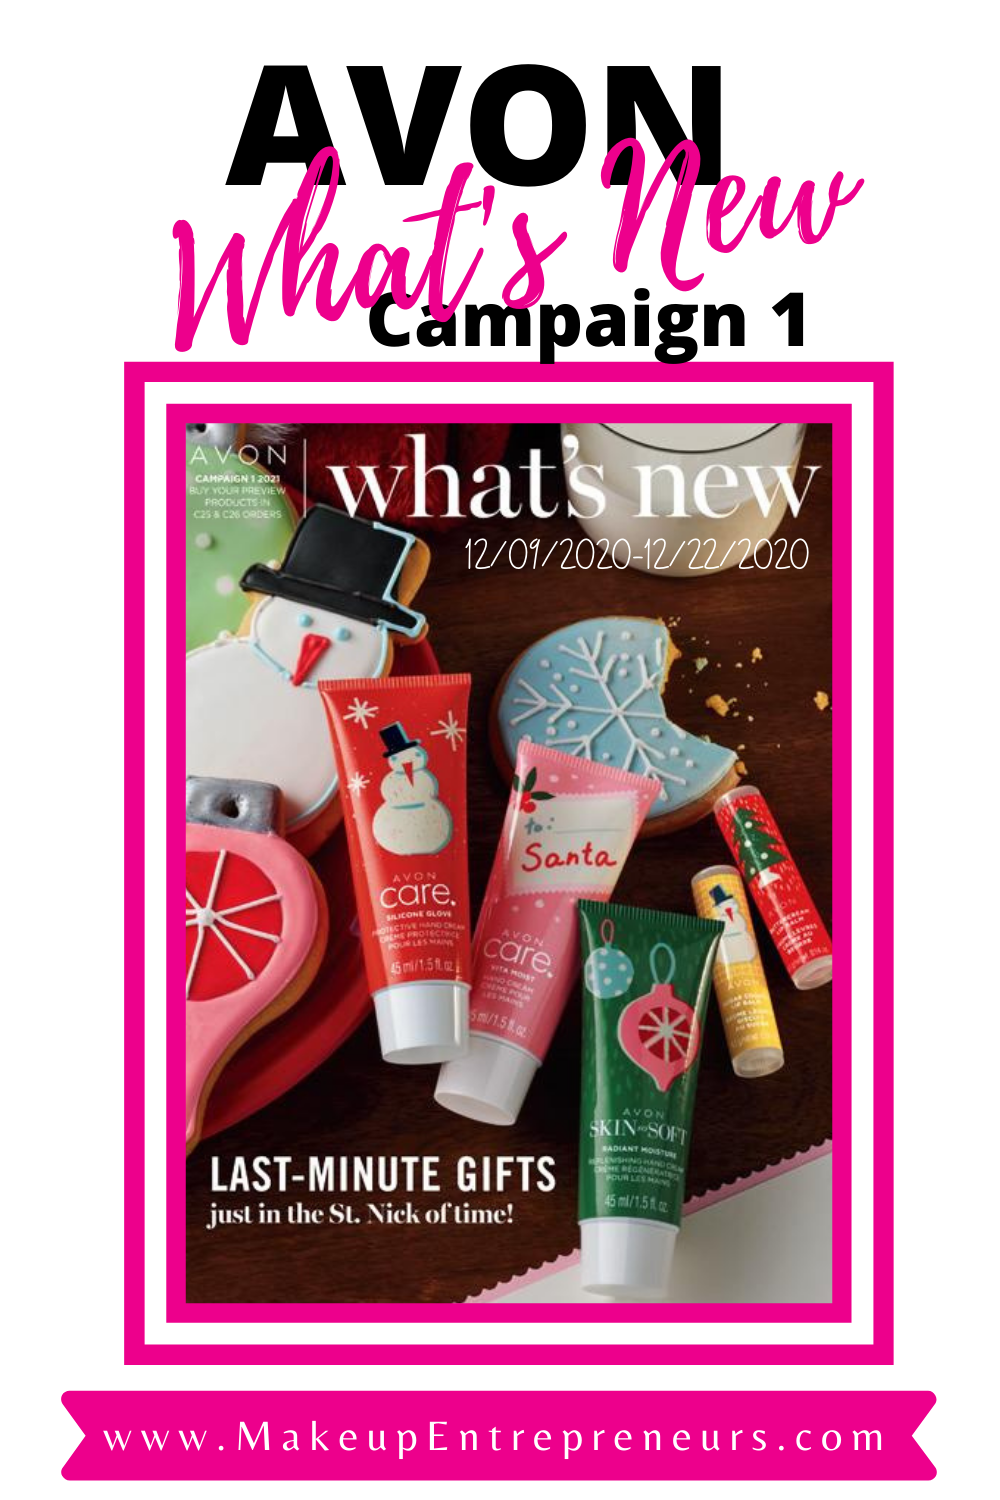 Avon What's New Campaign 01 2021